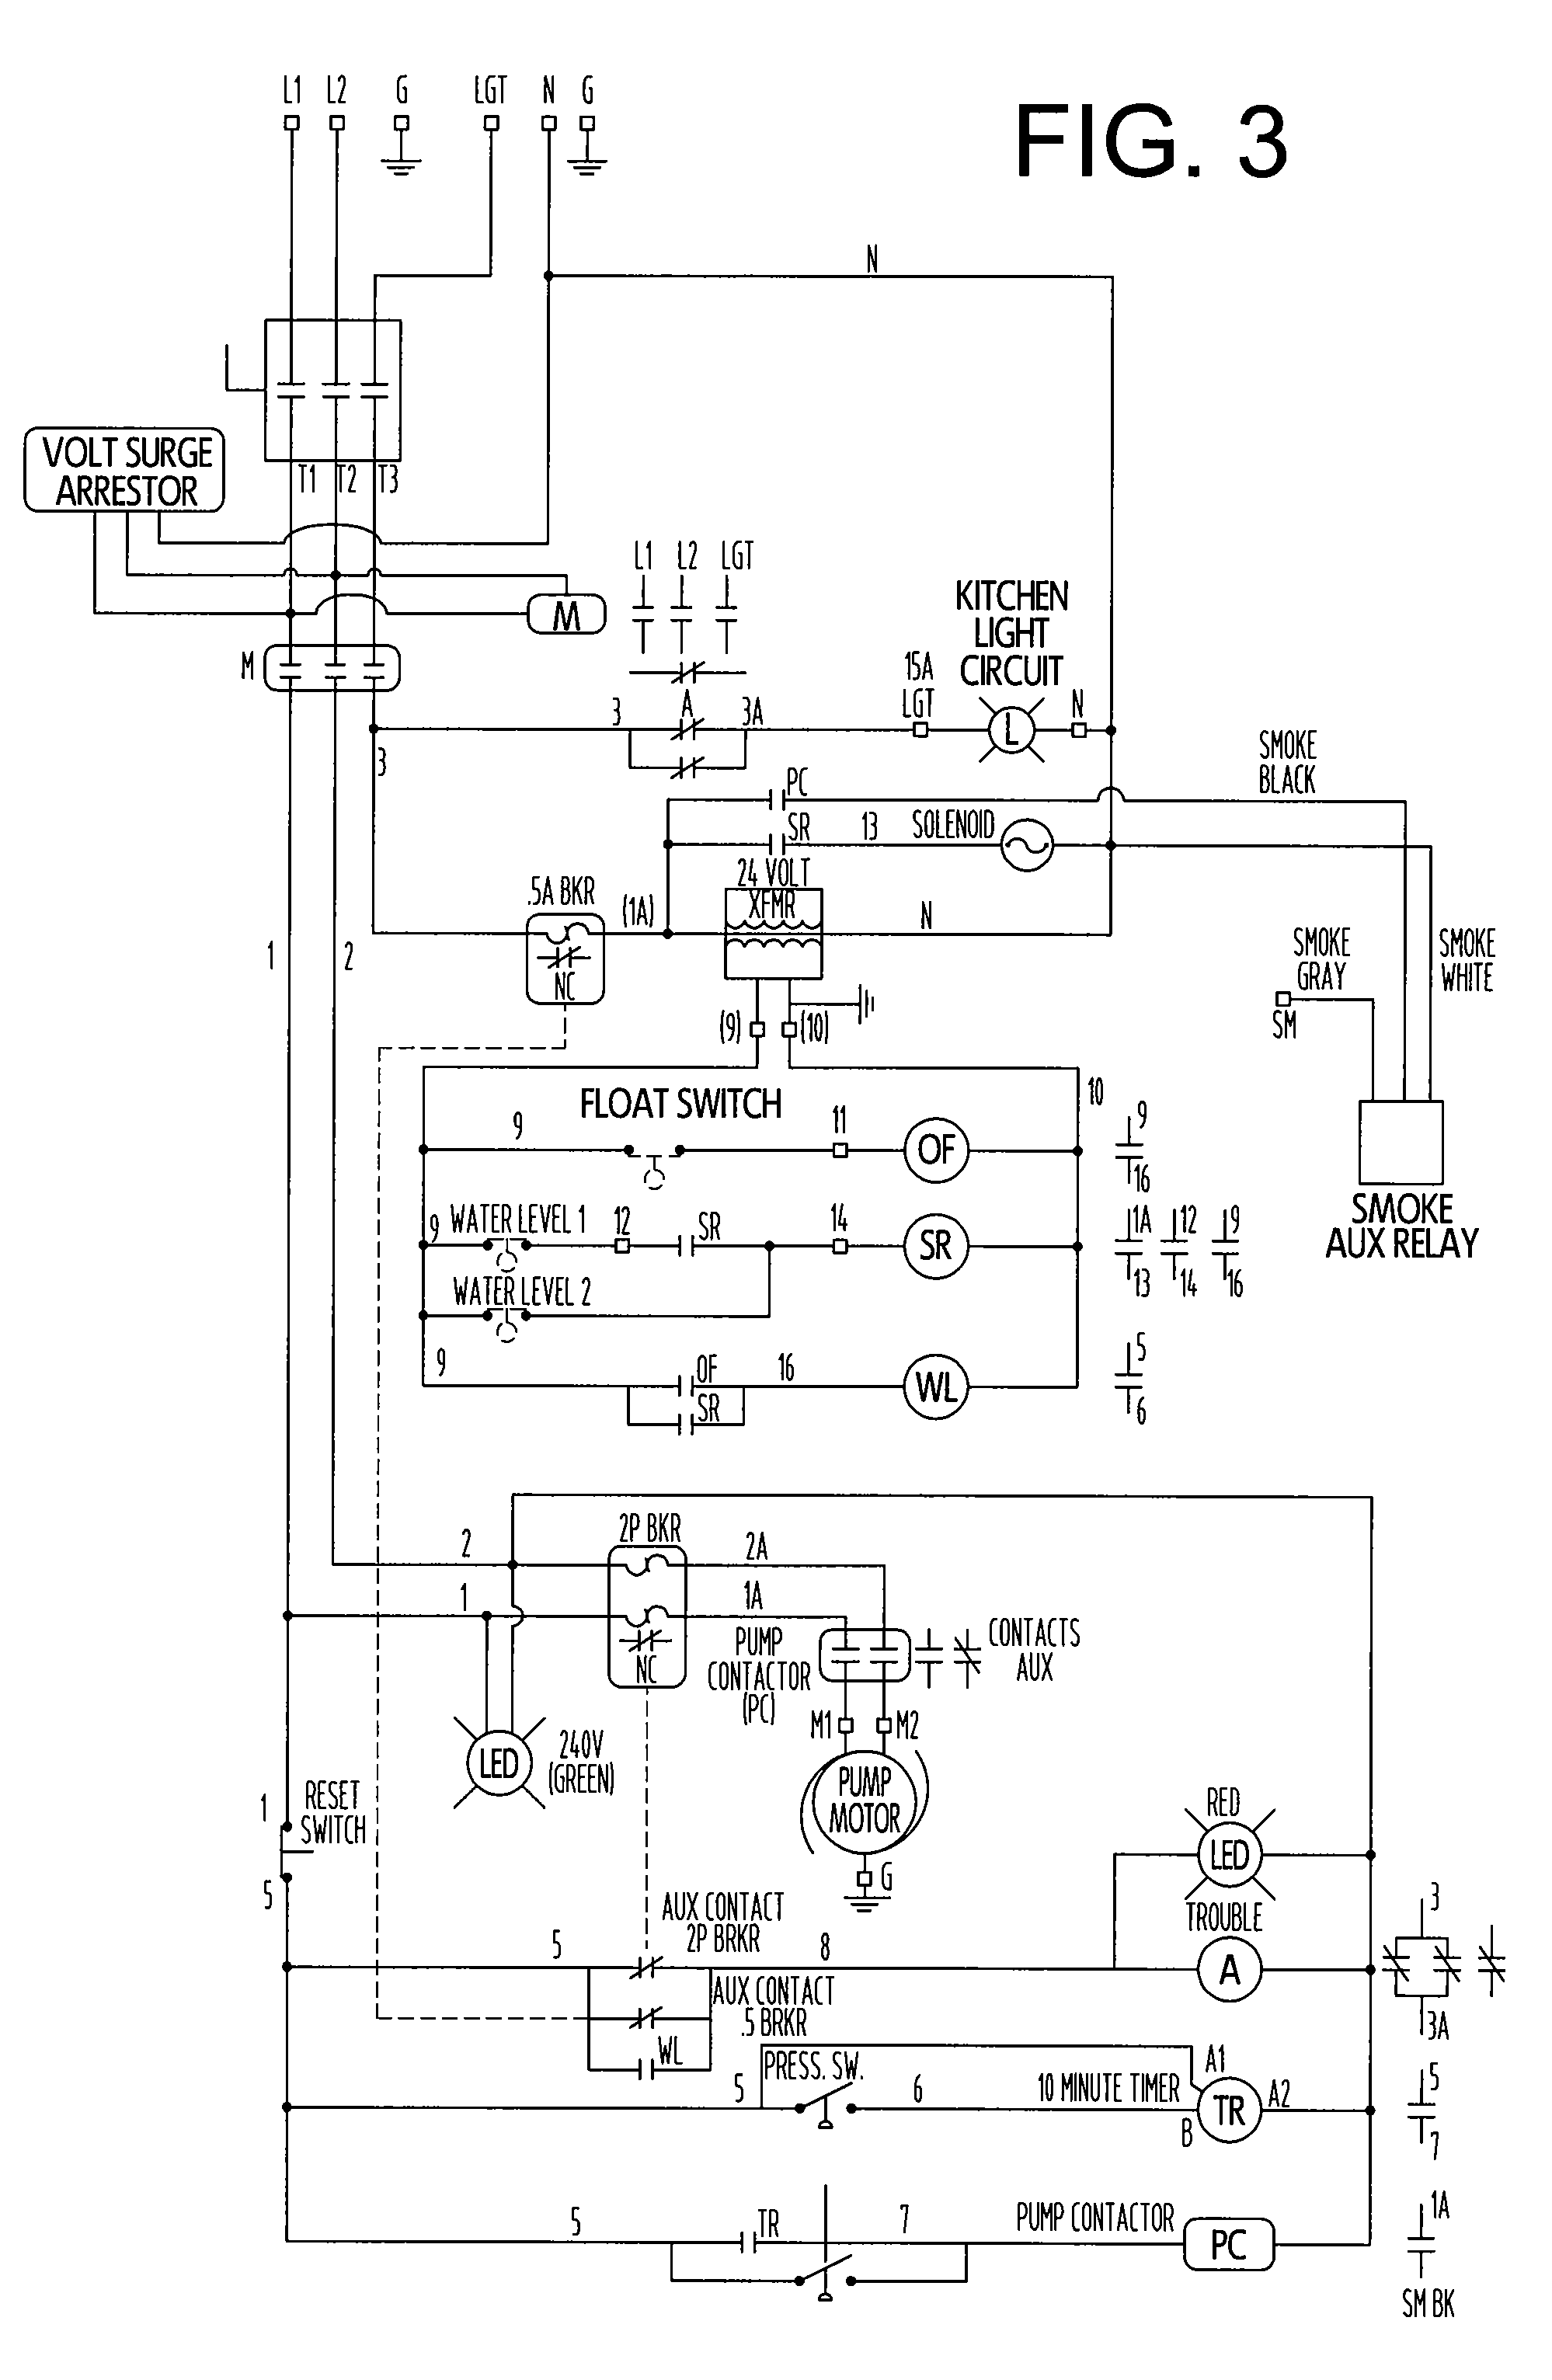 2004 Pontiac Grand Prix Parts Diagram likewise NEMA CENTERLINE 2100 together with Hvac Control Systems And Building also Ssr Wiring Schematics 71137 additionally Electrical Slds. on electrical interlock diagram